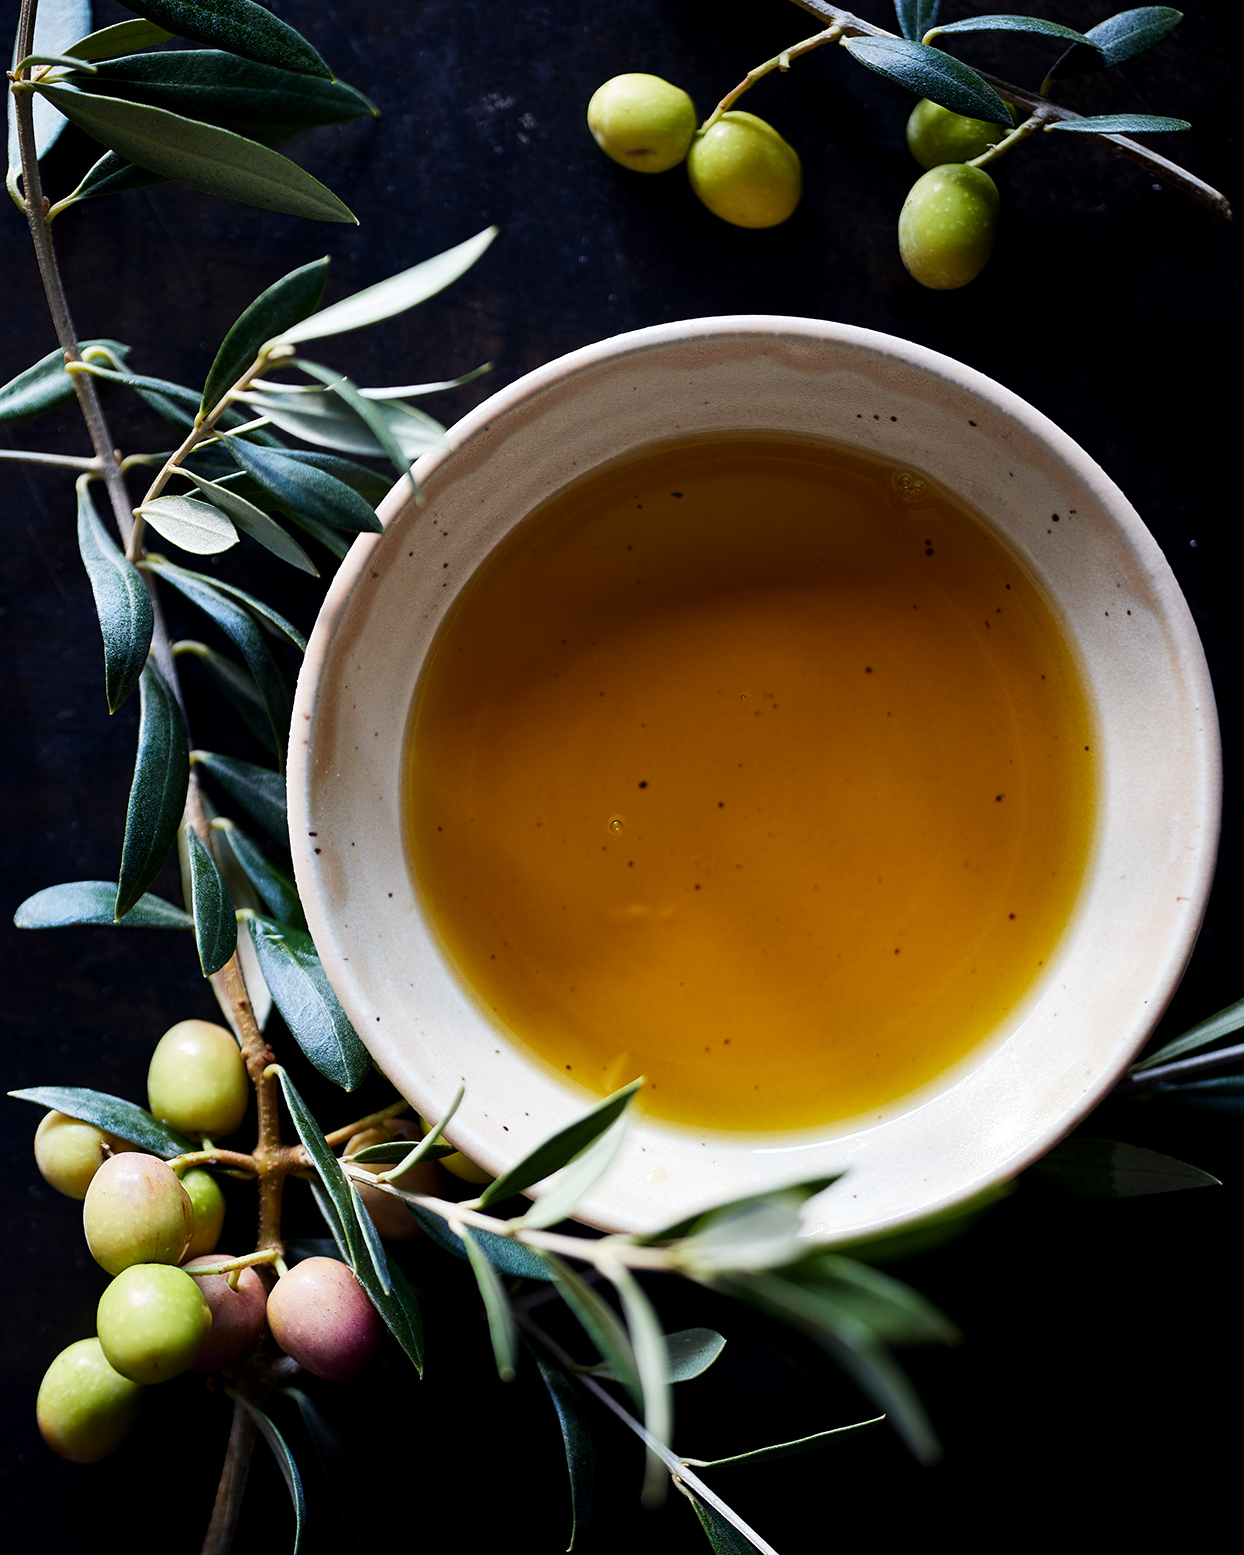 olive oil and olive branches